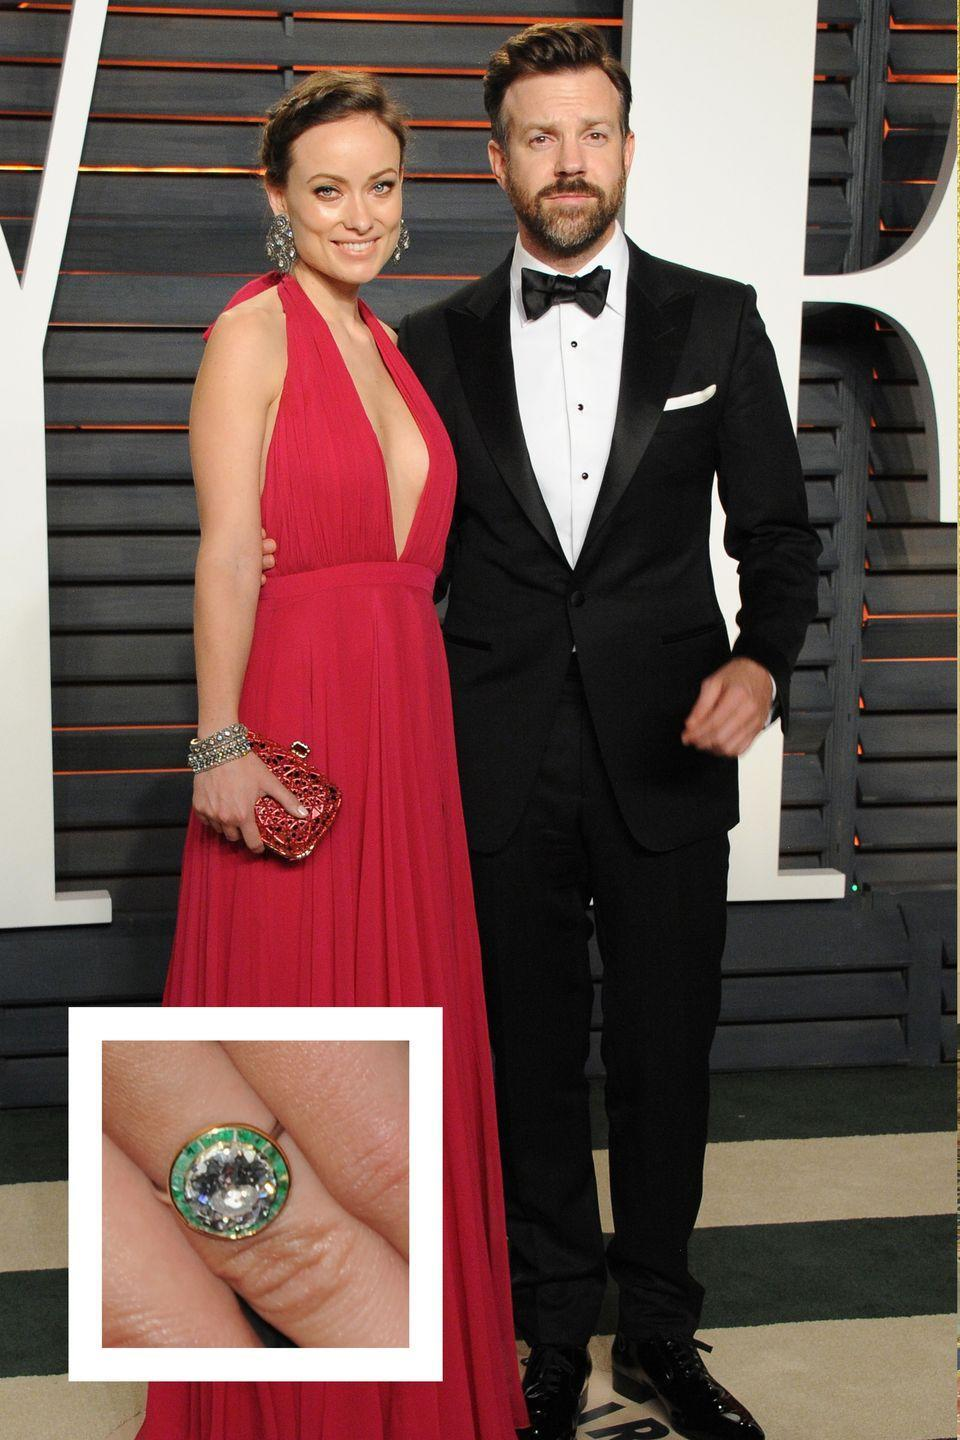 """<p>Olivia Wilde and longtime boyfriend Jason Sudeikis announced their engagement in January 2013. Wilde's dazzling engagement ring features a gorgeous round diamond surrounded <a href=""""https://www.townandcountrymag.com/the-scene/weddings/news/g1616/emerald-engagement-rings/"""" rel=""""nofollow noopener"""" target=""""_blank"""" data-ylk=""""slk:by an emerald halo"""" class=""""link rapid-noclick-resp"""">by an emerald halo</a> on a thin yellow gold band. </p>"""